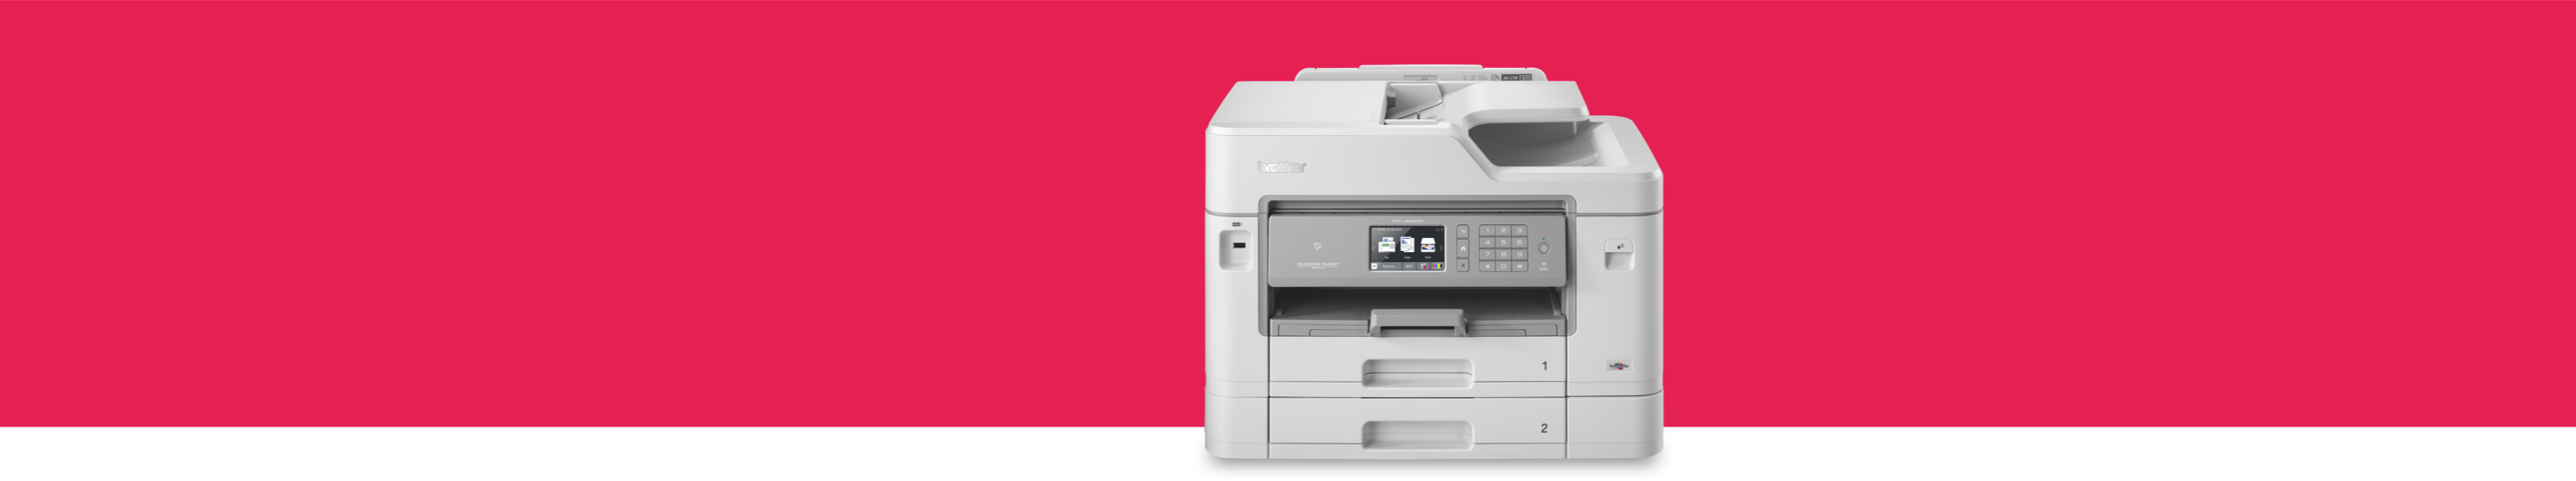 inkjet printer on a red backdrop